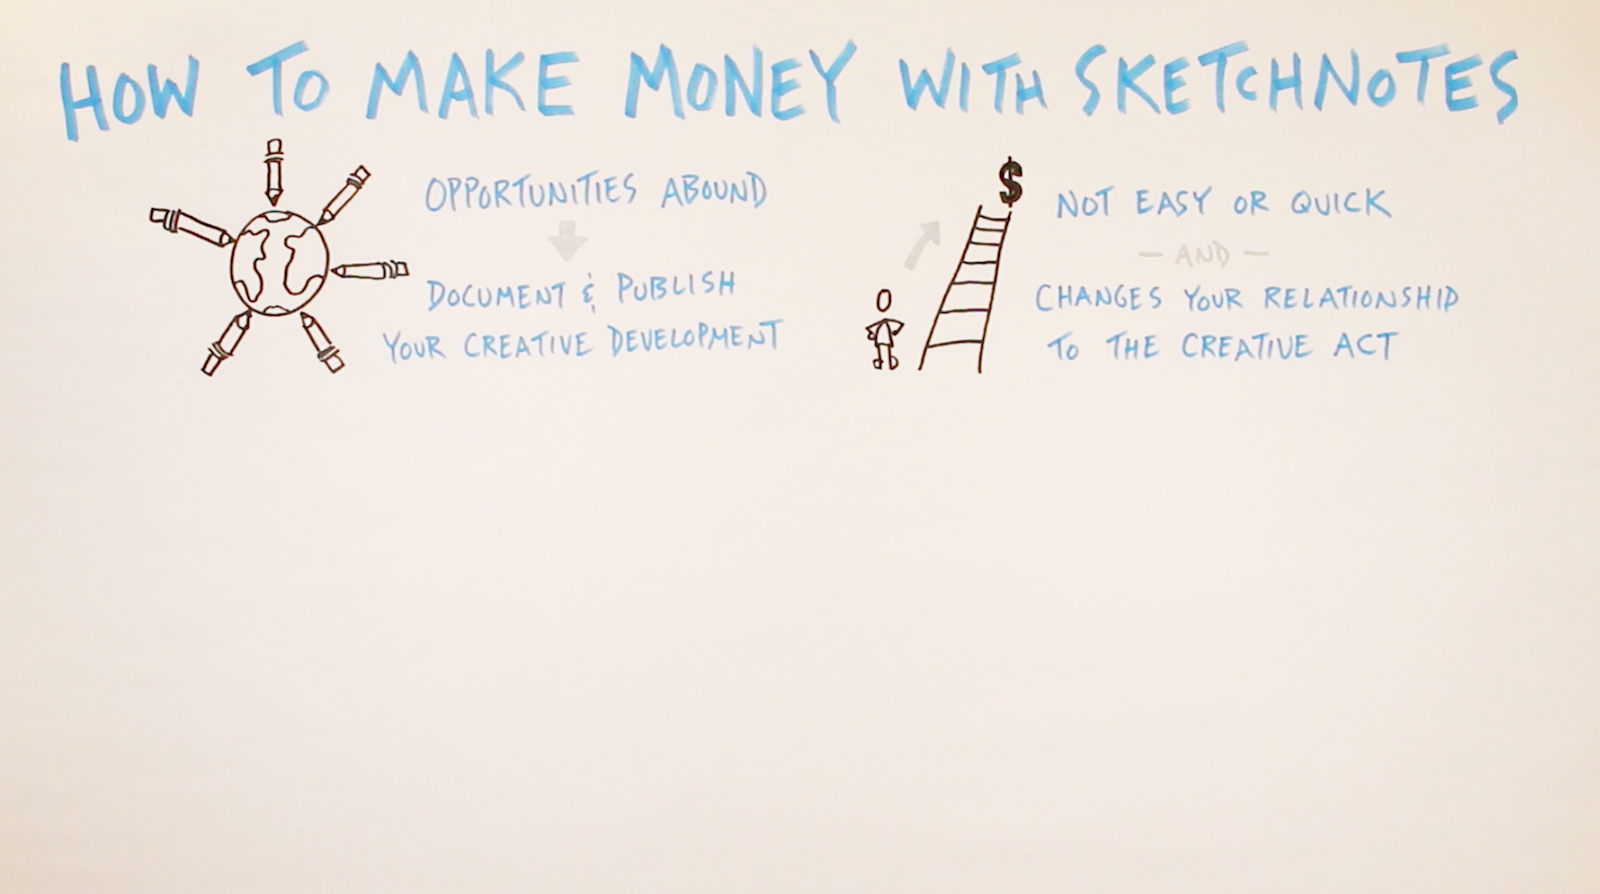 Make money with sketchnotes: the challenges